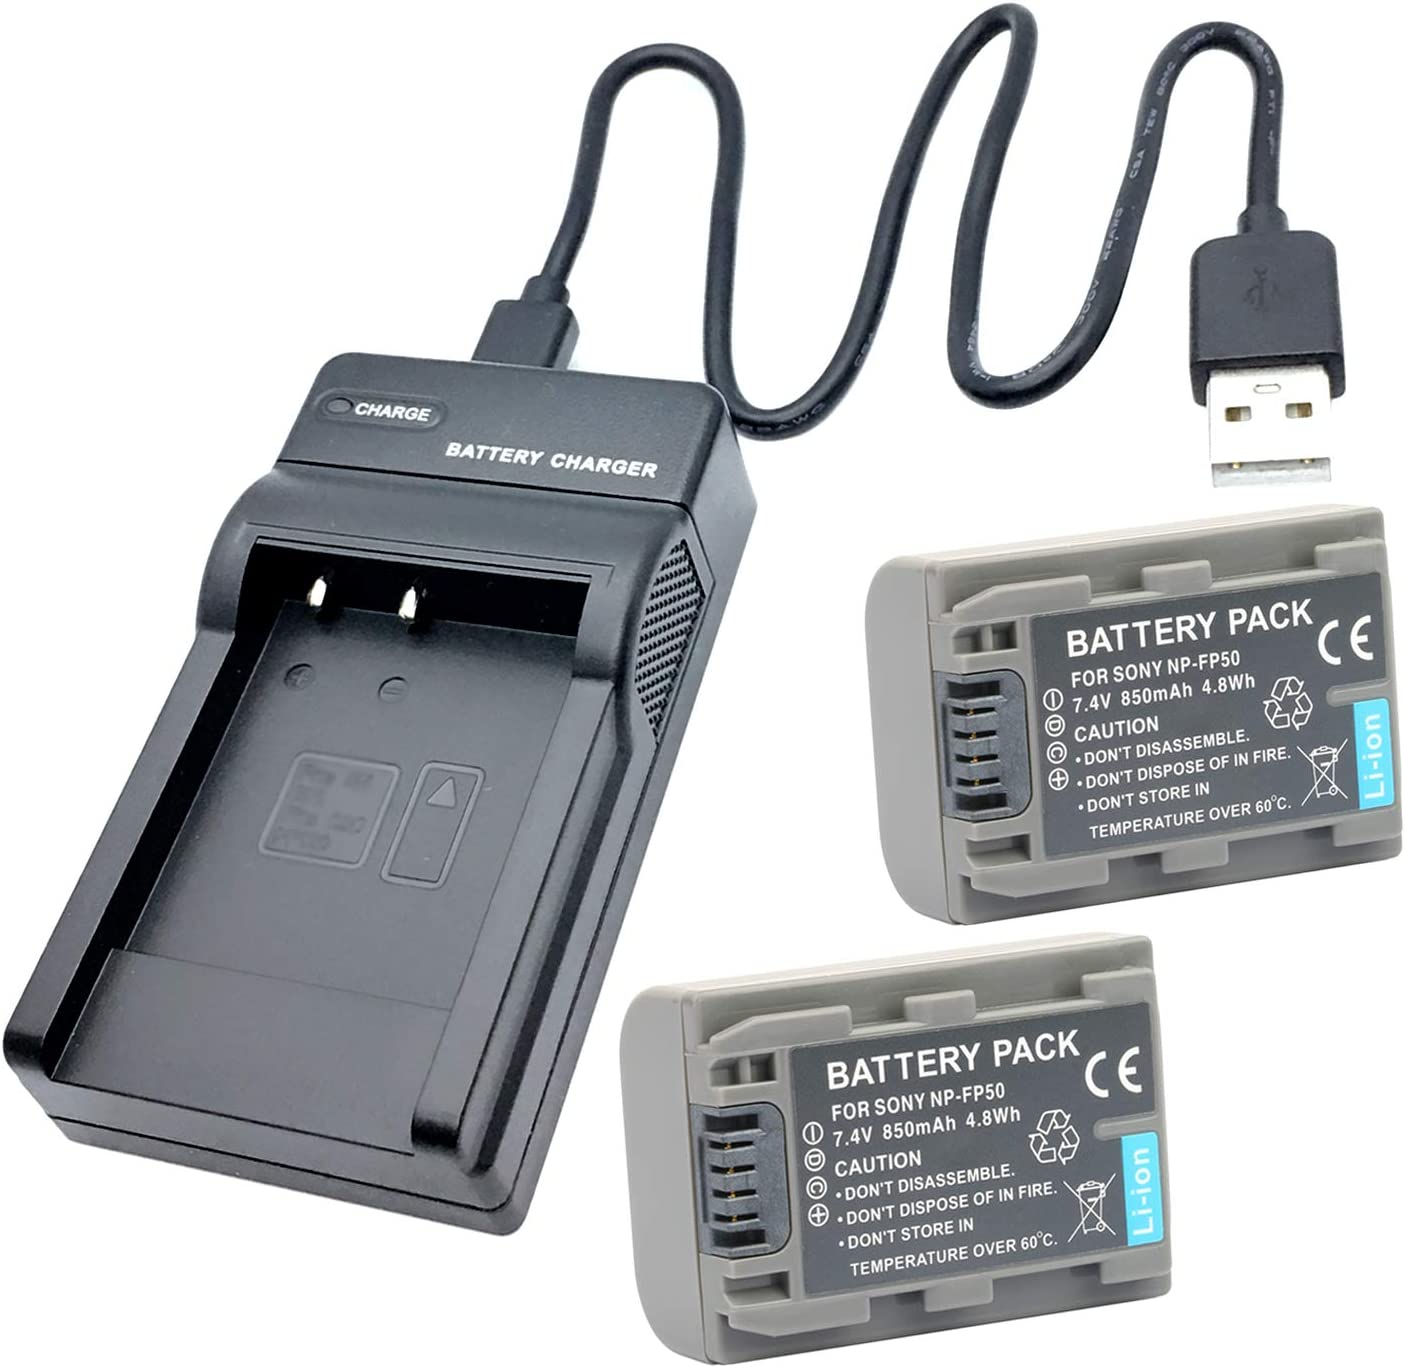 DCR-HC17E DCR-HC18E DCR-HC16E DCR-HC19E Handycam Camcorder LCD USB Battery Charger for Sony HDR-HC3E